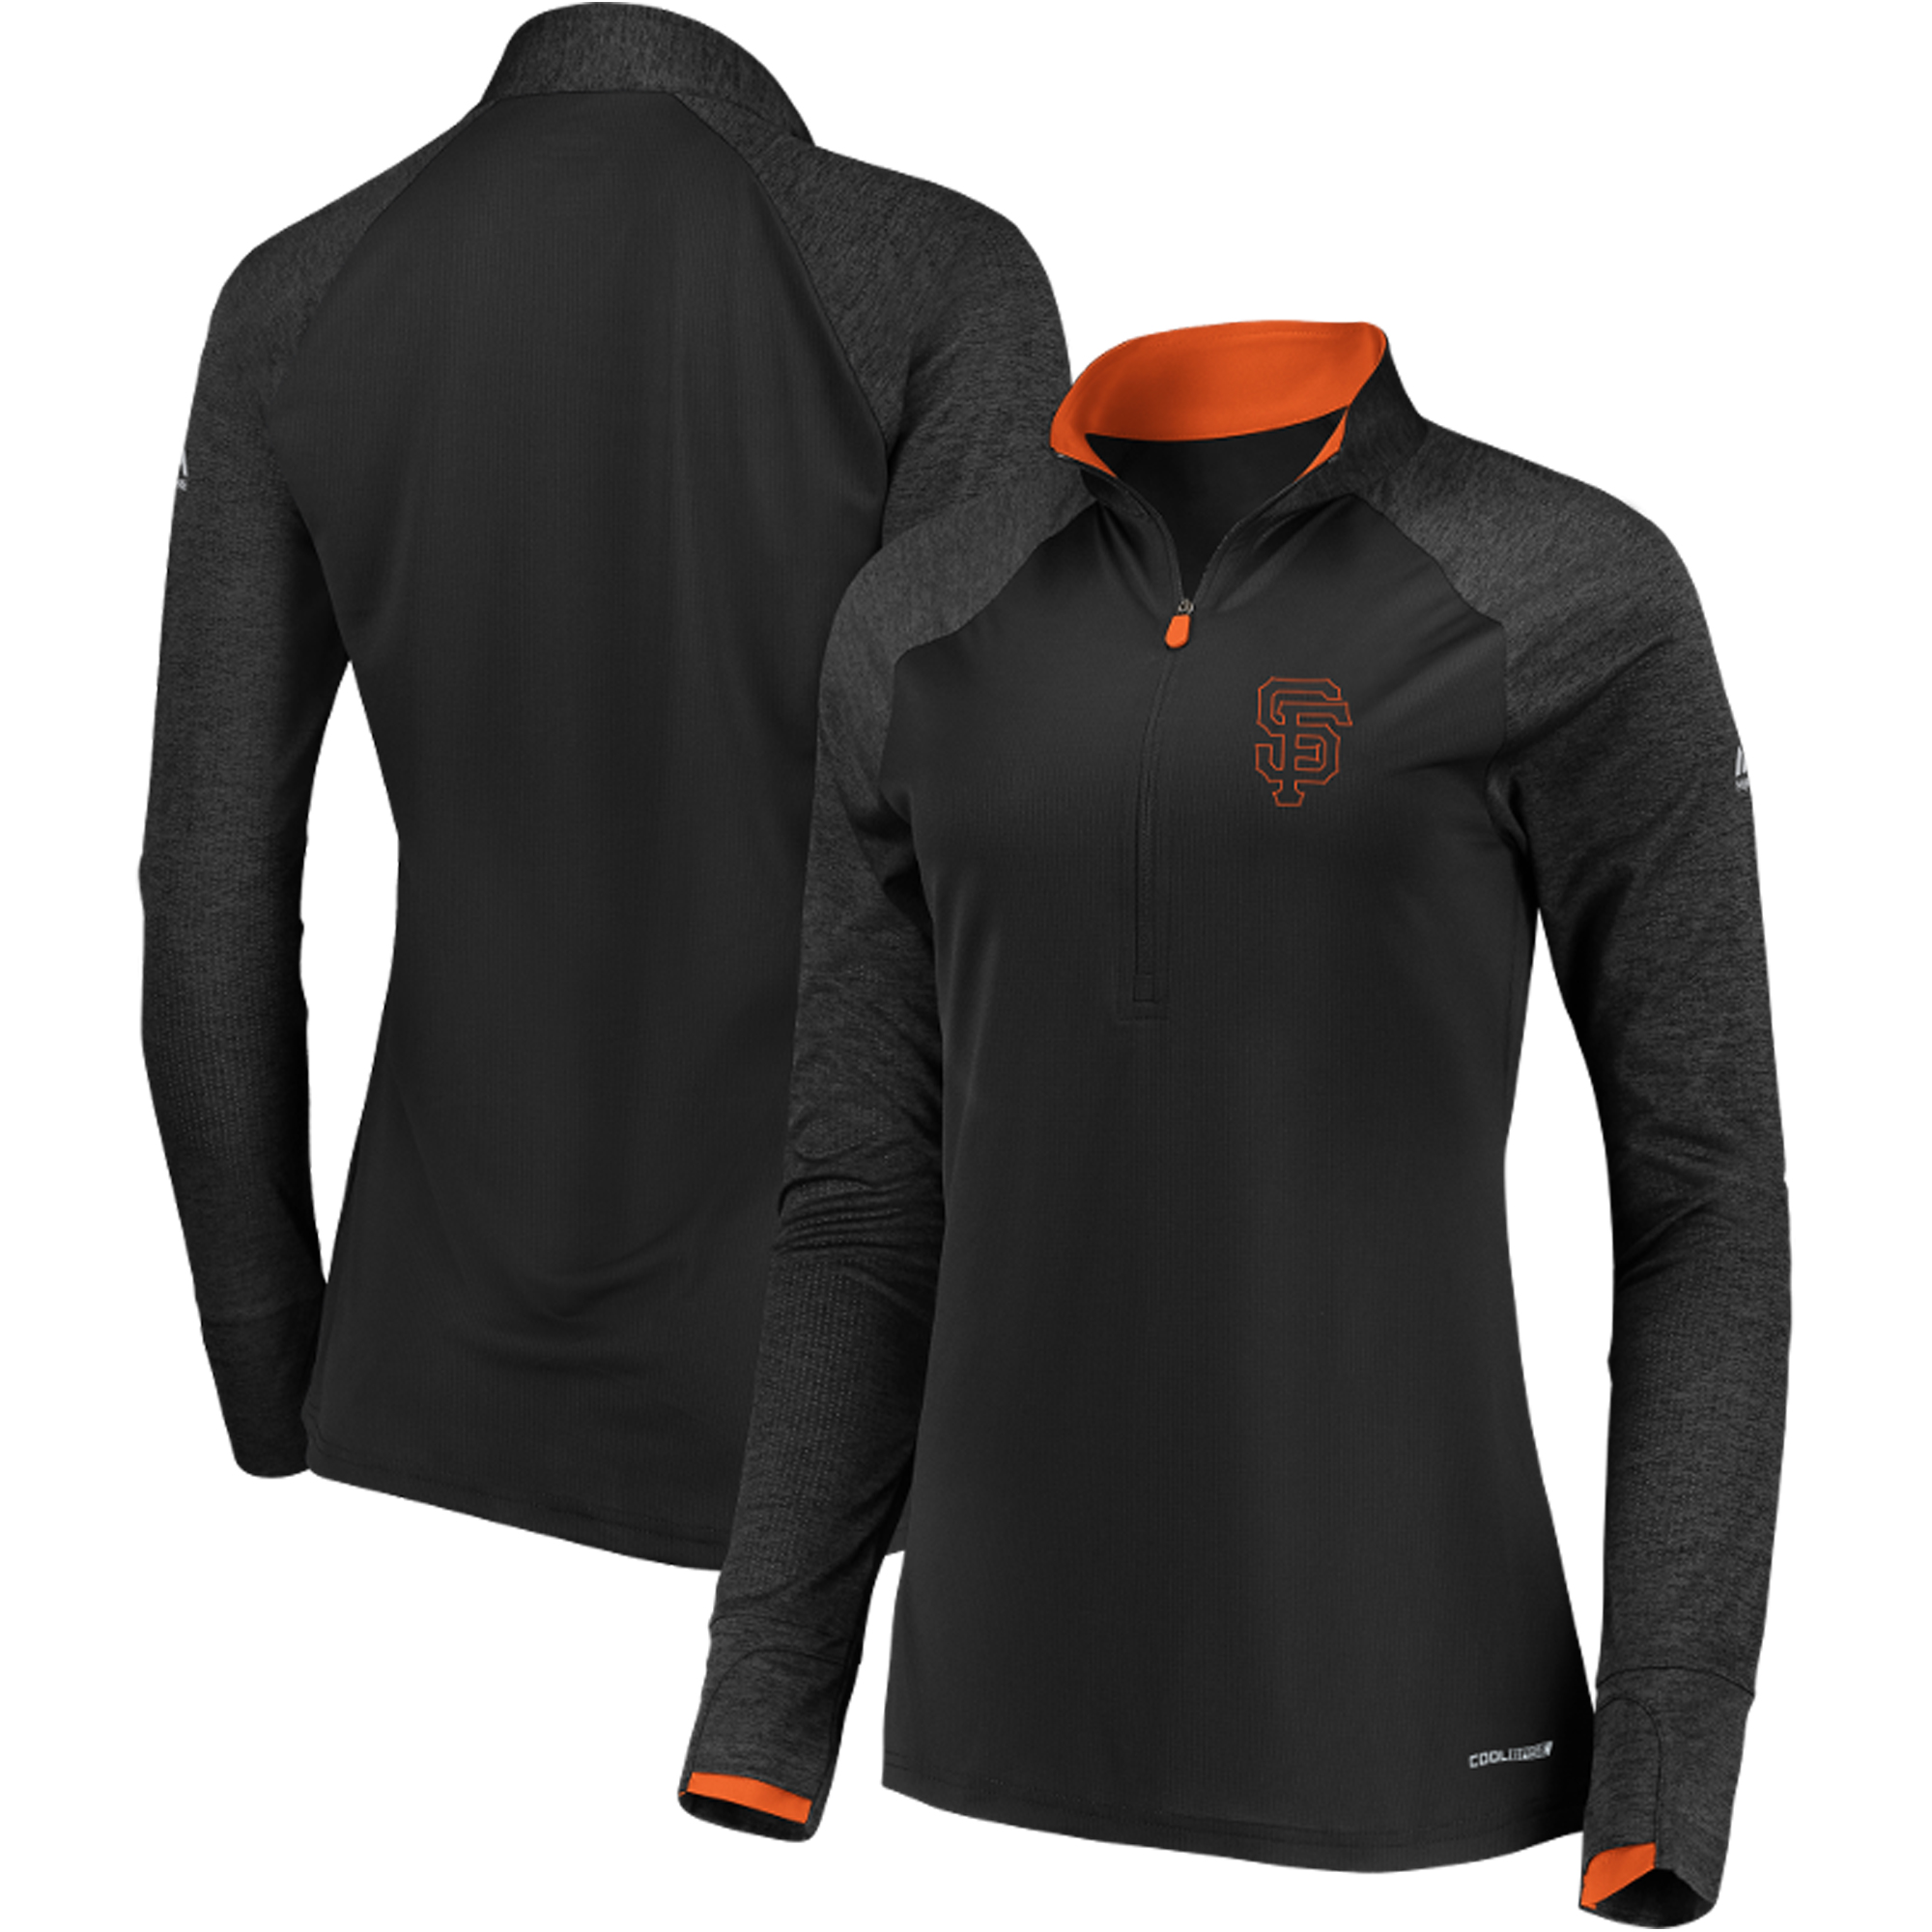 San Francisco Giants Majestic Women's Extremely Clear Cool Base Raglan 1 2-Zip Jacket Black by MAJESTIC LSG